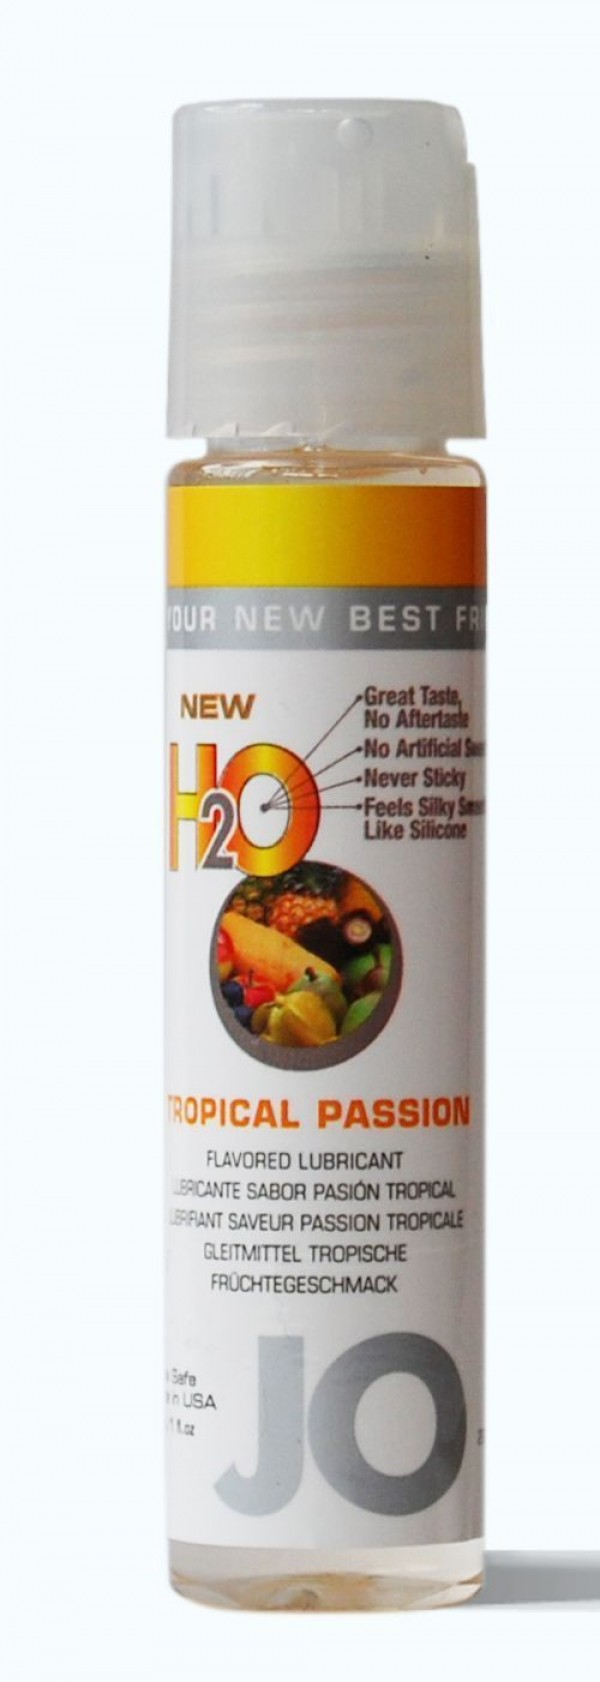 Jo H2O Tropical Passion Lubricant 1 fl.oz/ 30ml Travel Size